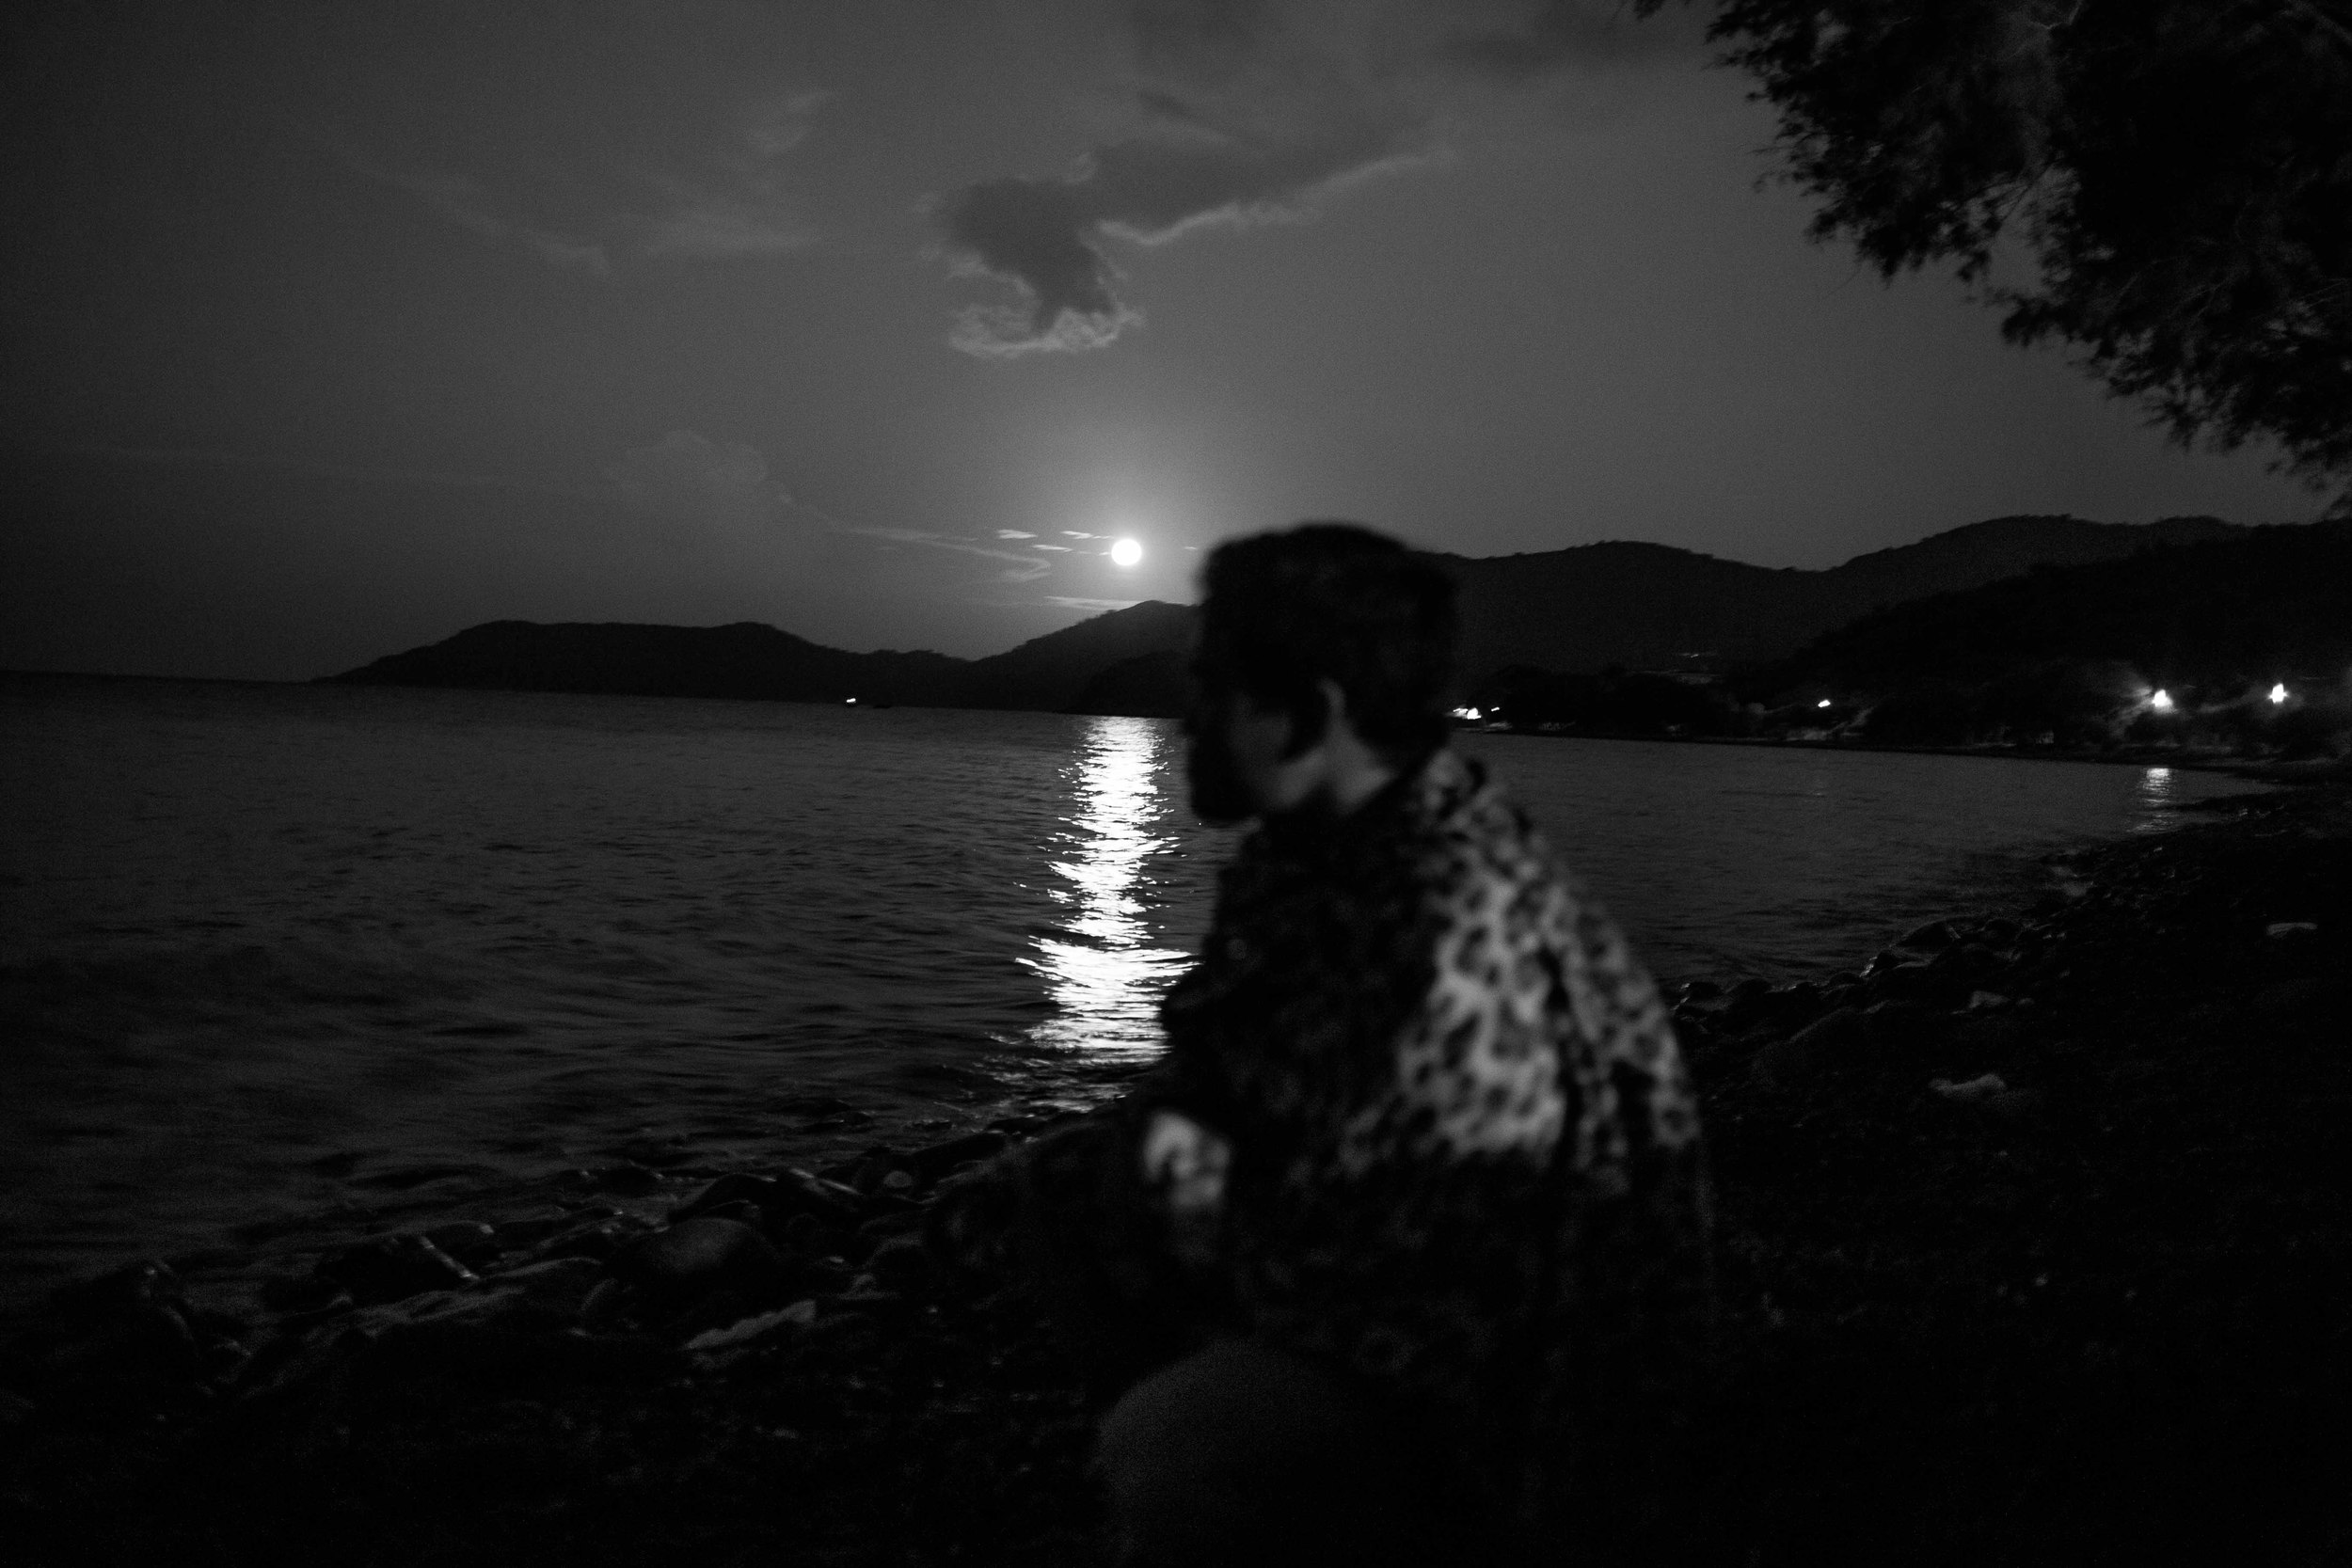 "An Afghan looks out towards the twinkling lights of the Turkish coast from which he has left. In the background, the ""super moon"" rises casting a silhouette."